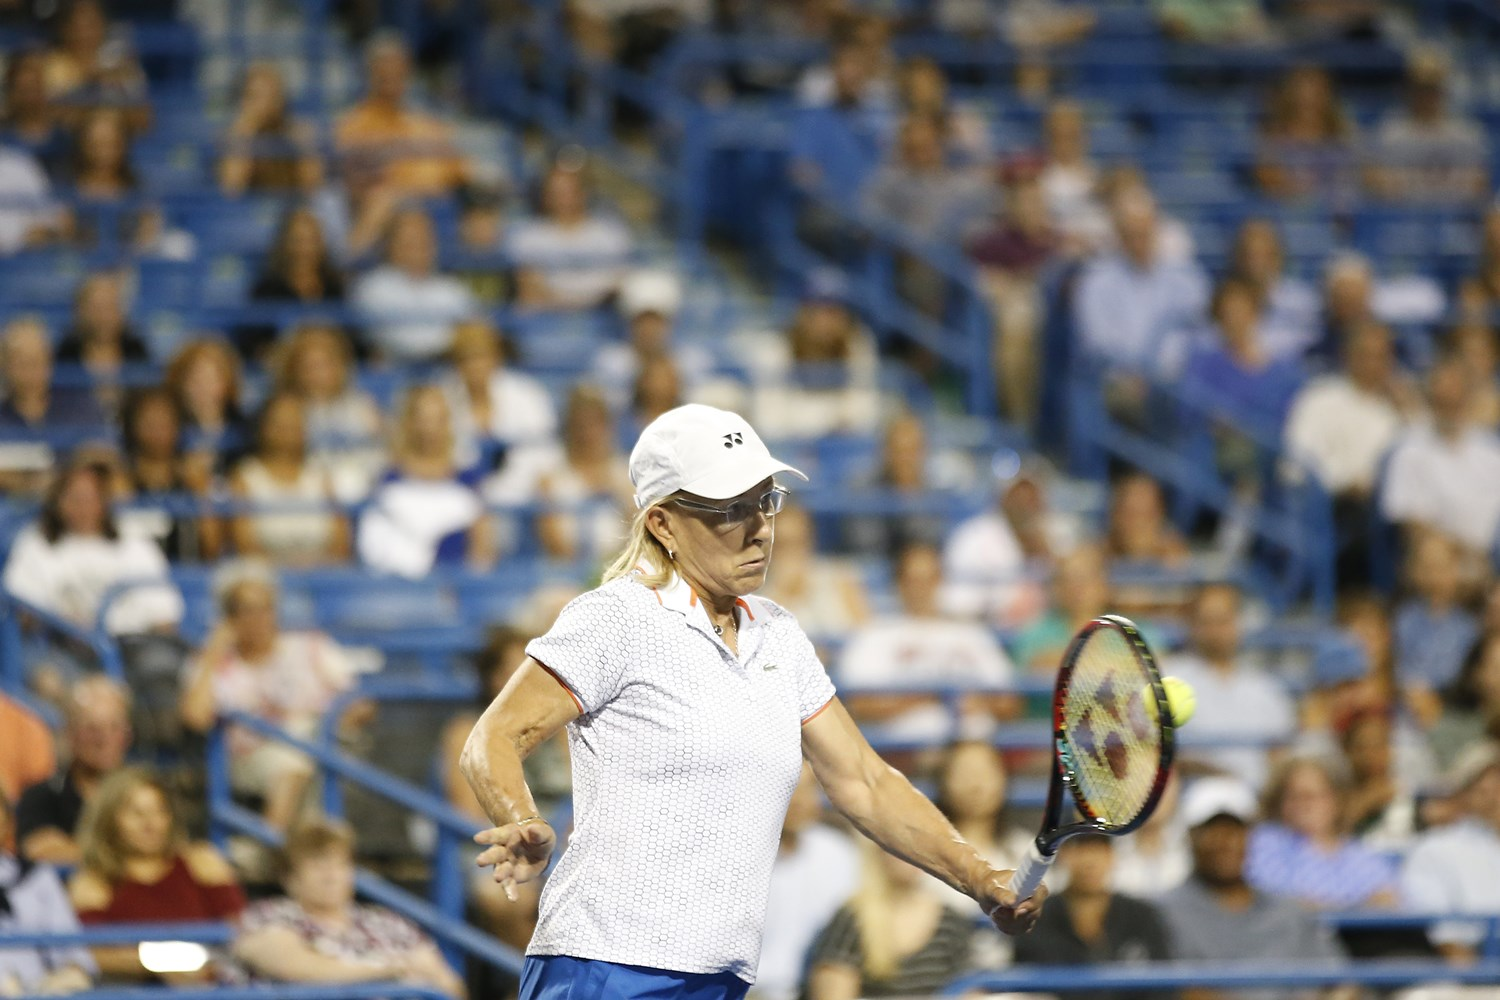 Martina Navratilova Mixed Doubles Exhibition